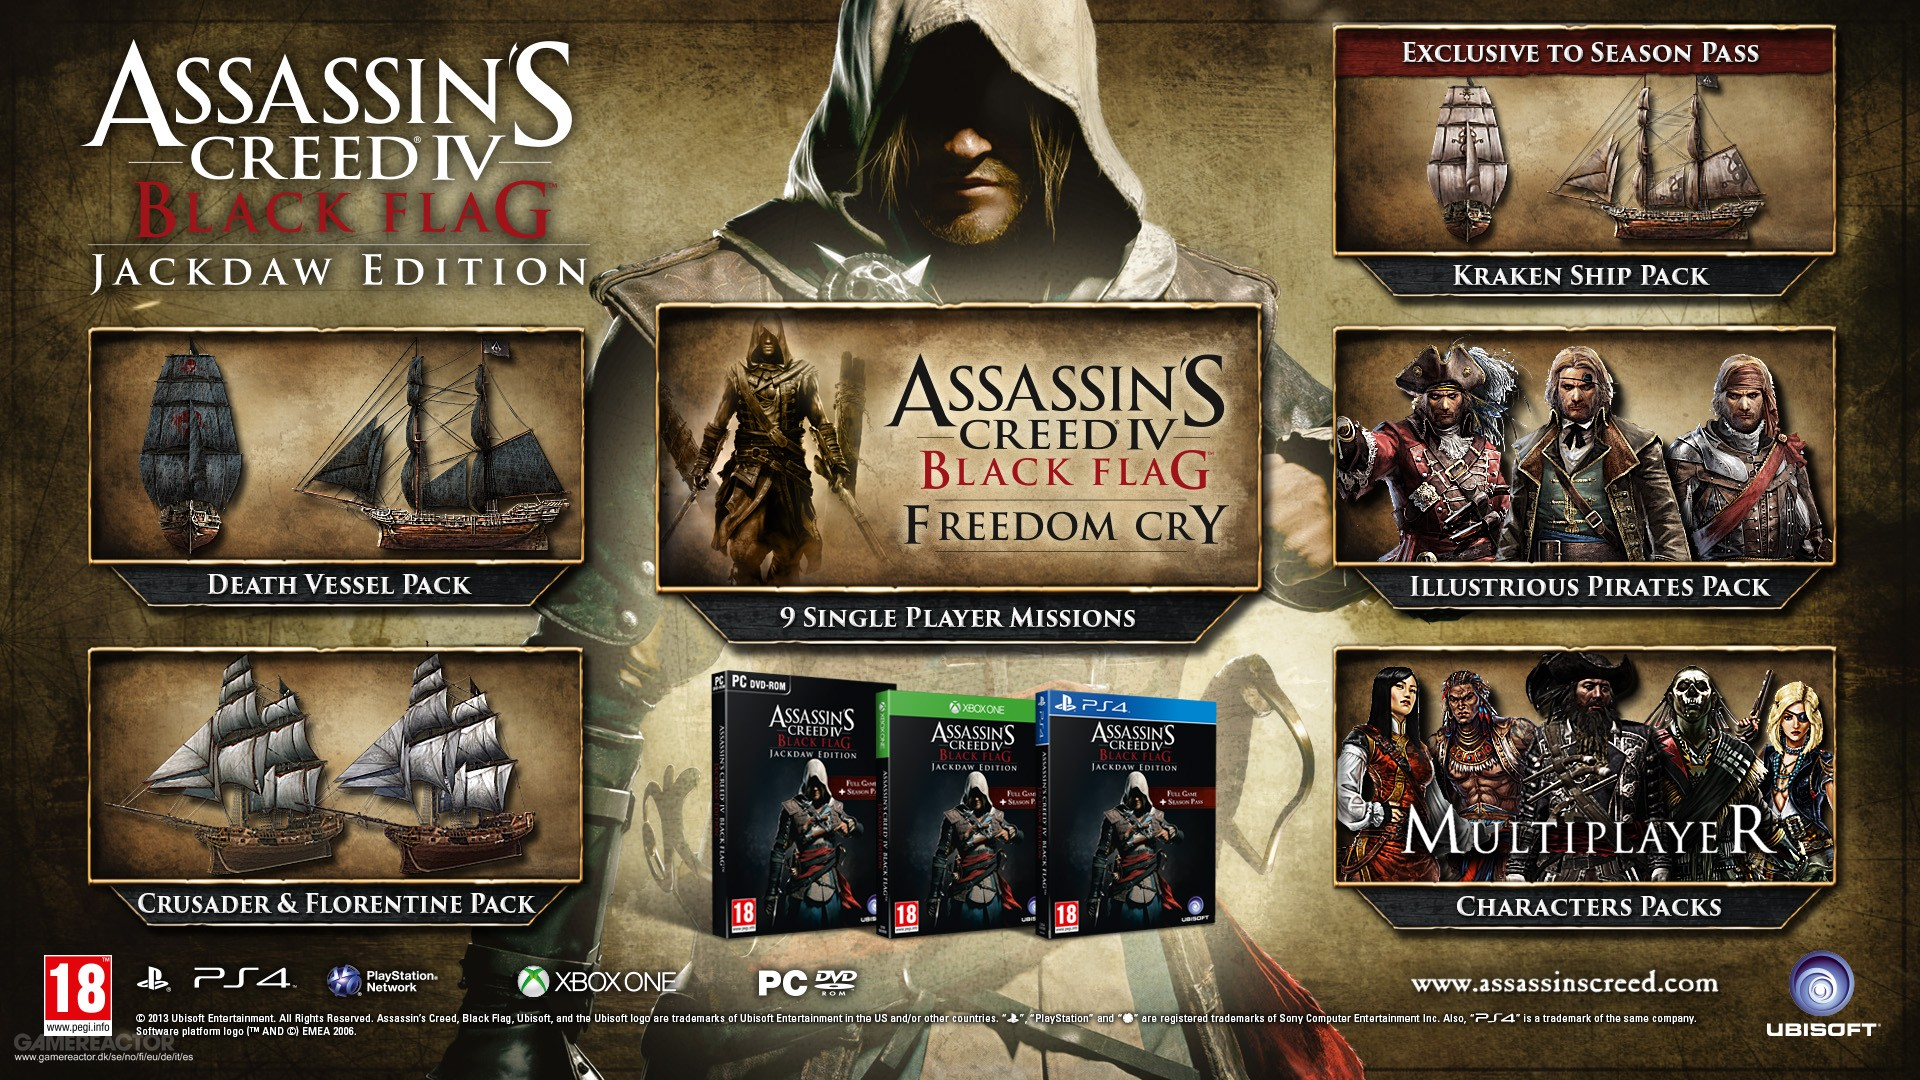 Assassin S Creed Iv Black Flag Gets Jackdaw Edition